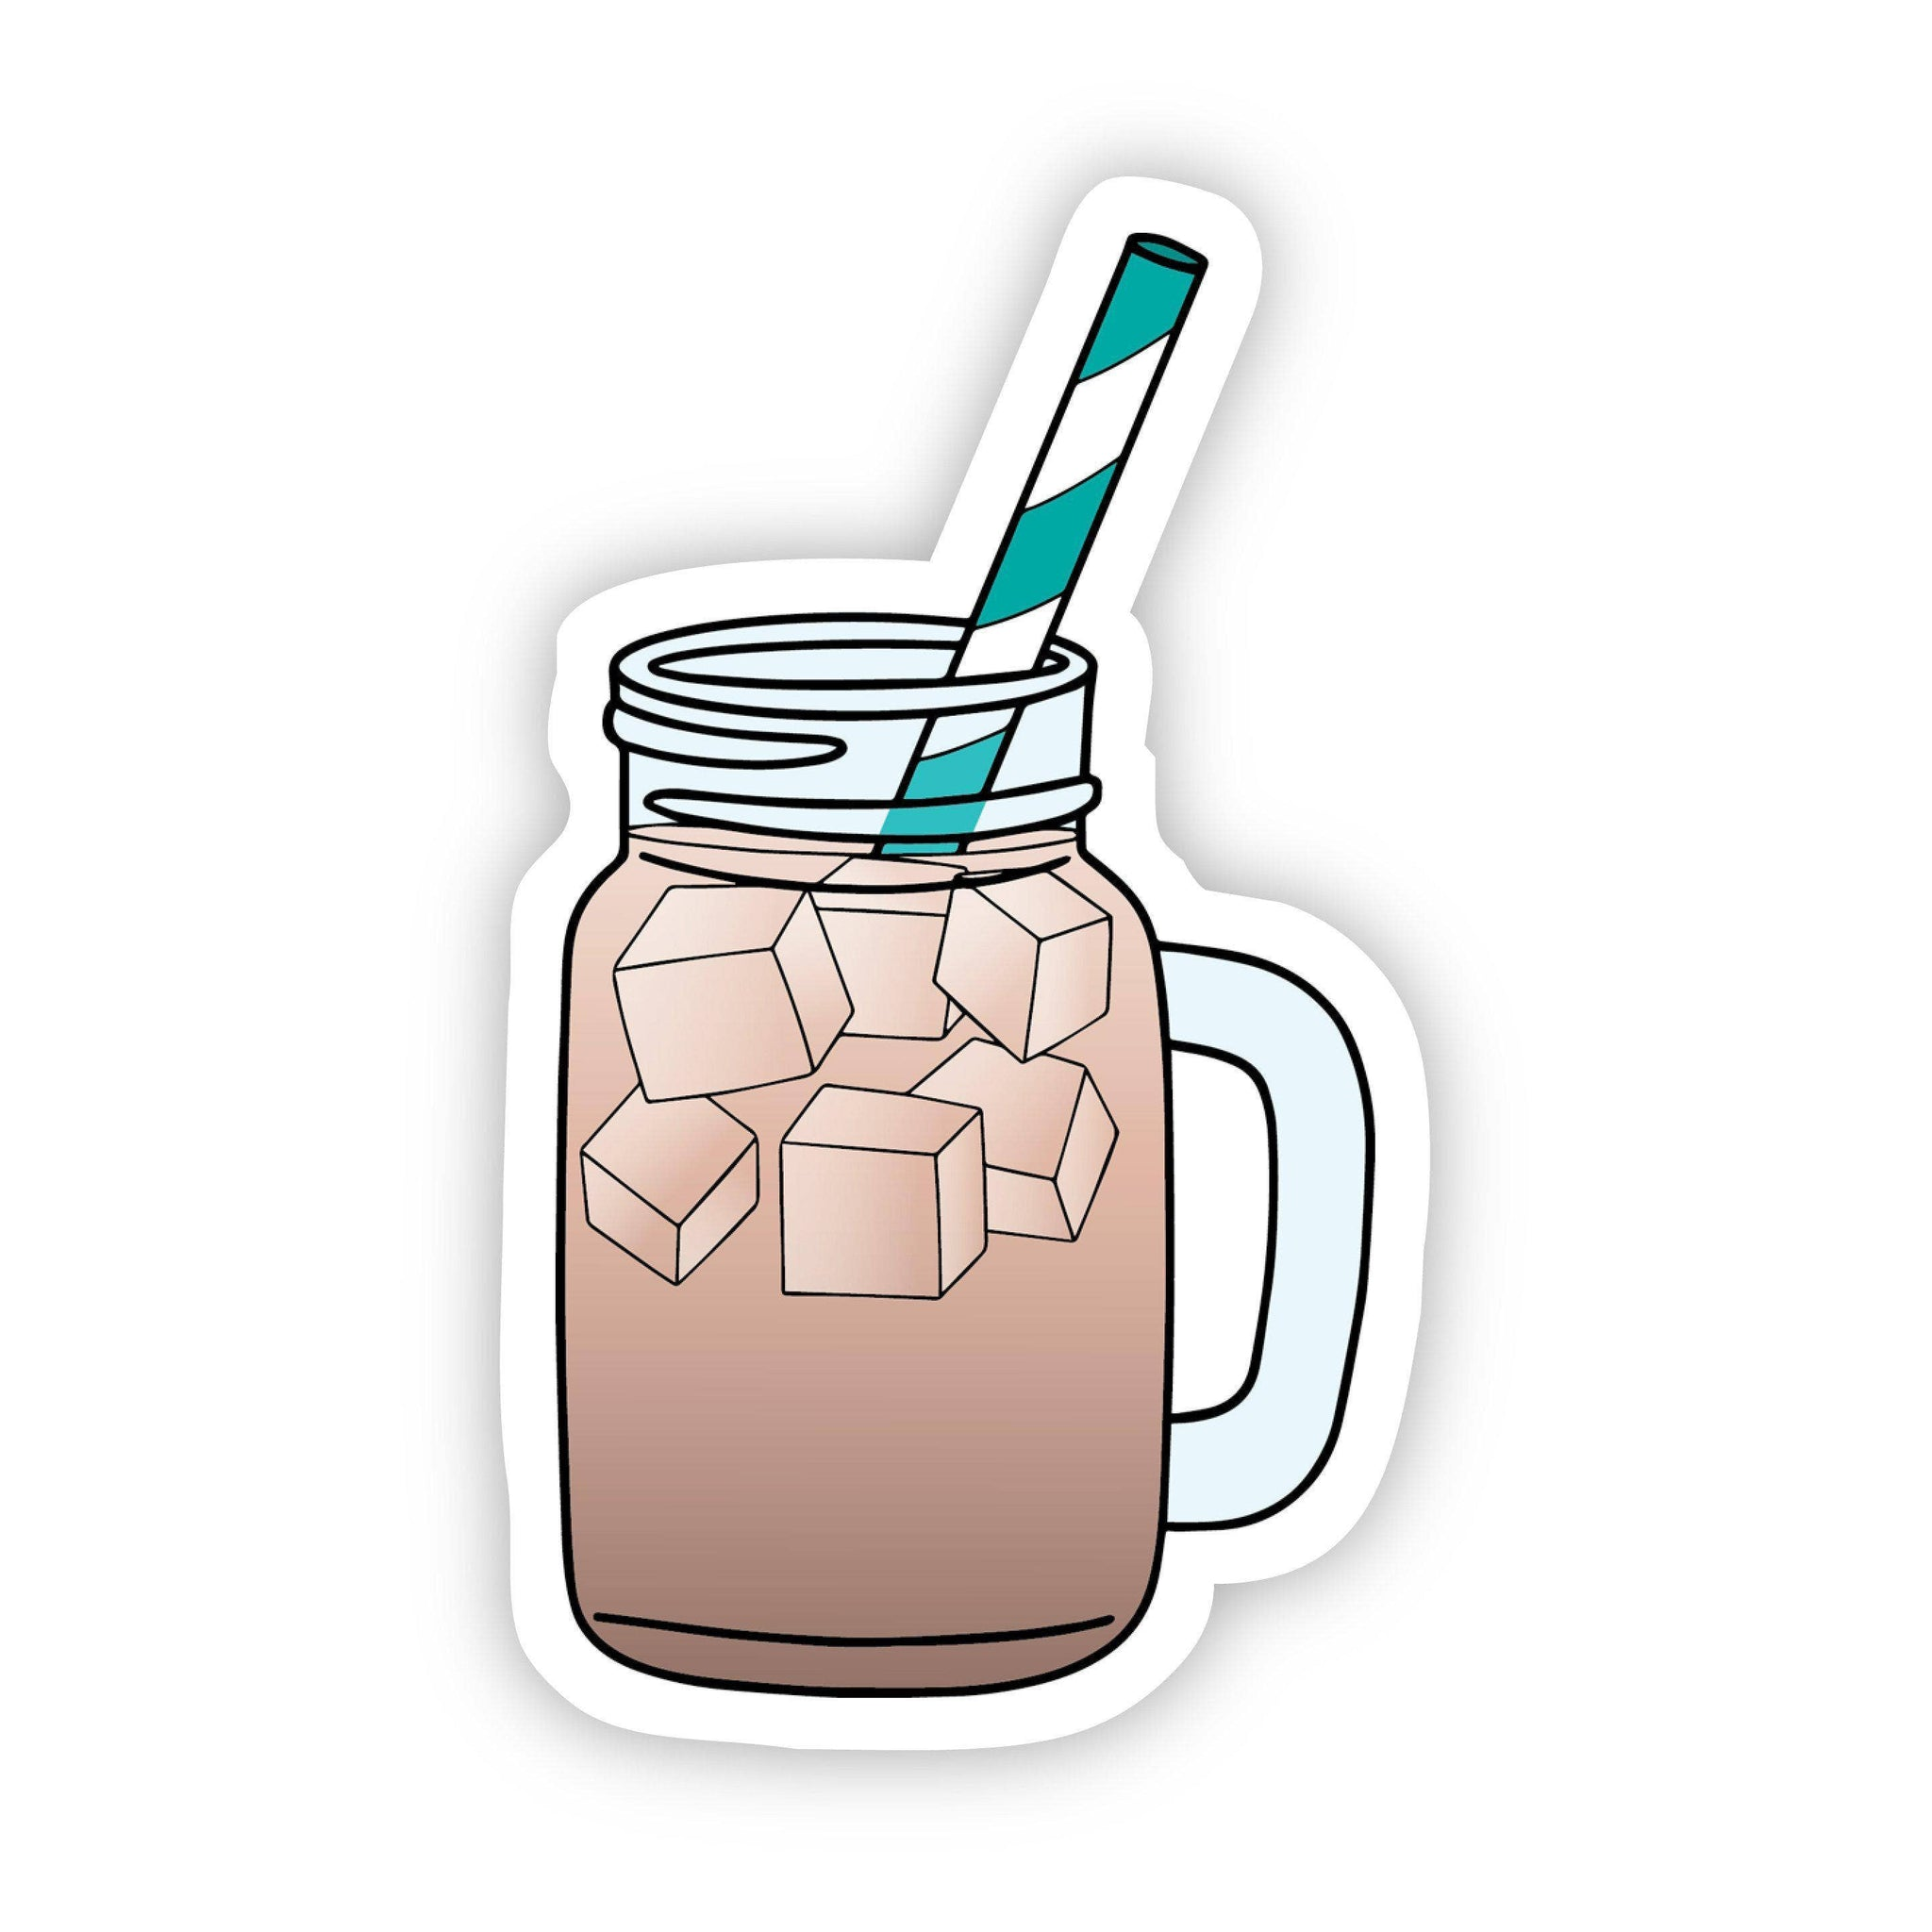 Big Moods - Iced Coffee Aesthetic Sticker